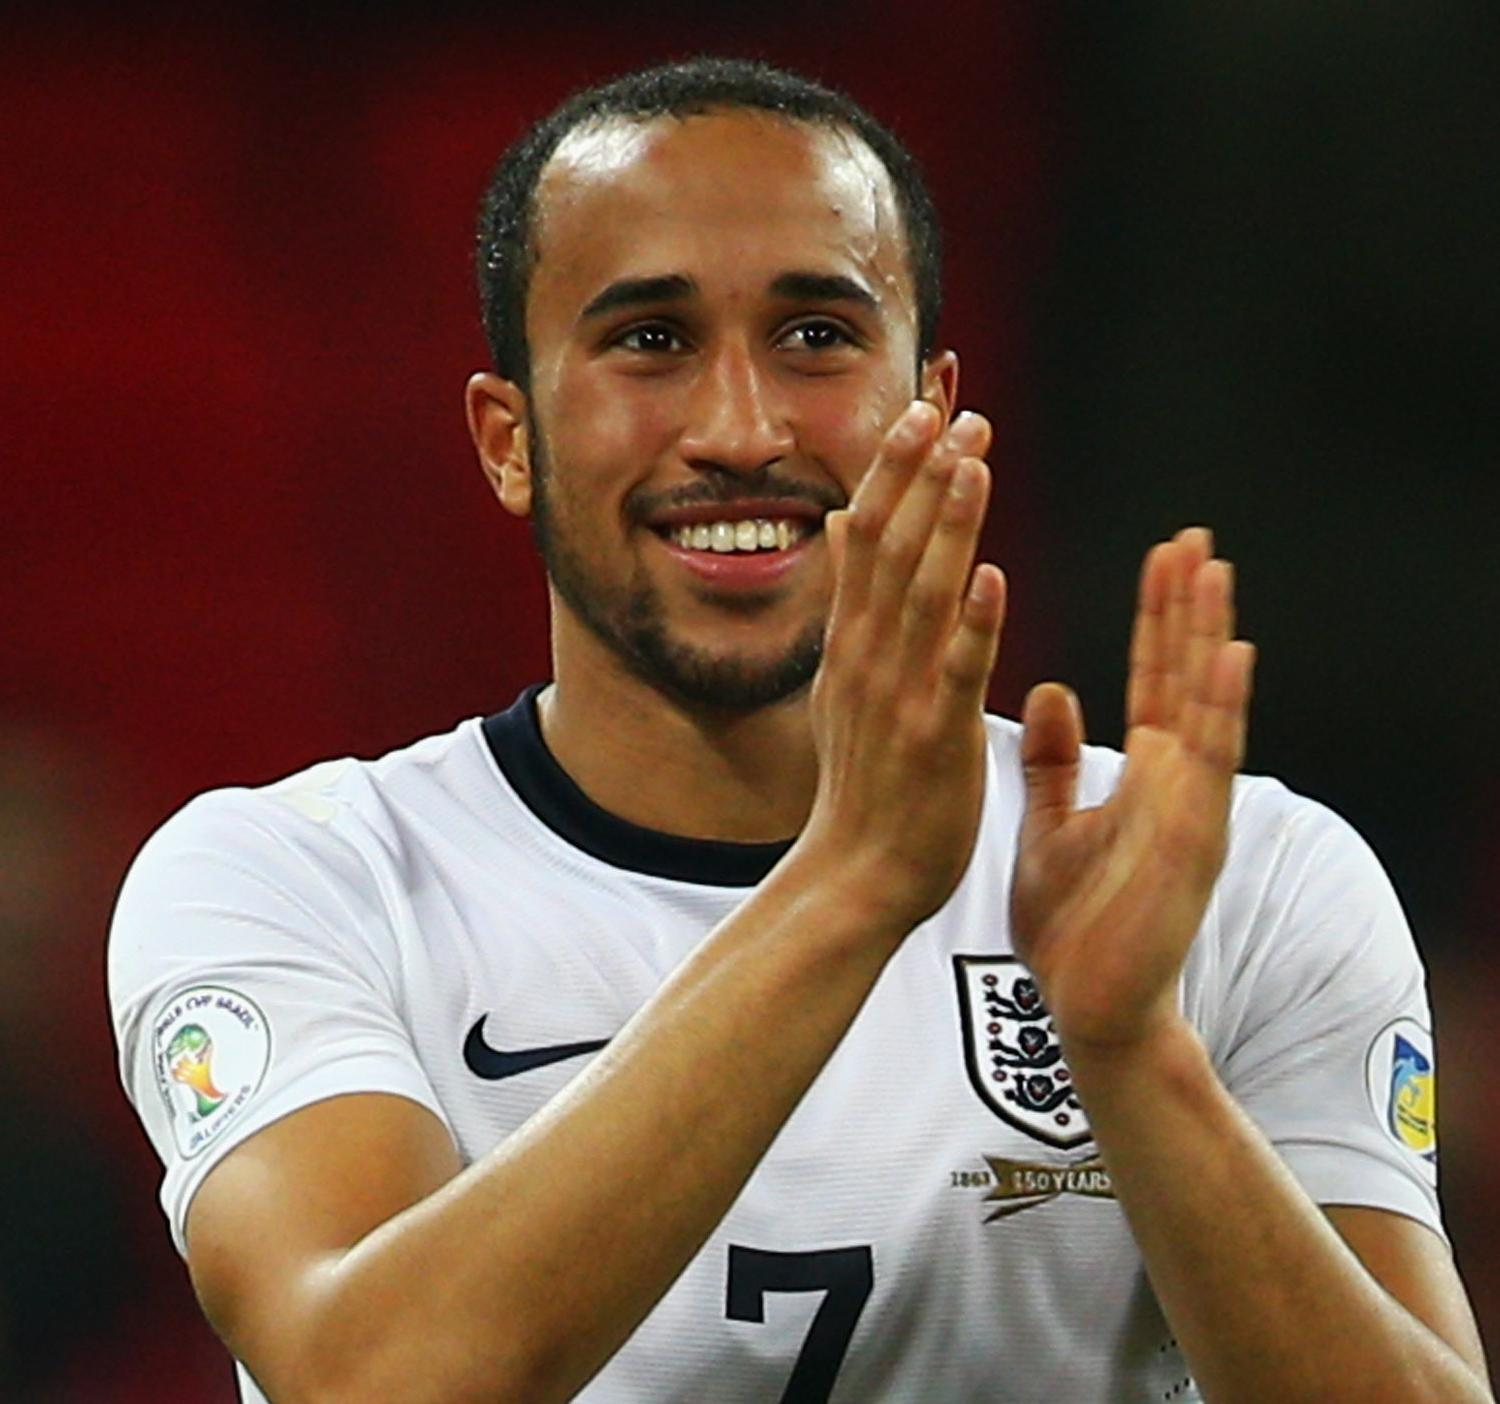 hi-res-184702733-andros-townsend-of-england-celebrates-as-they-qualify_crop_exact